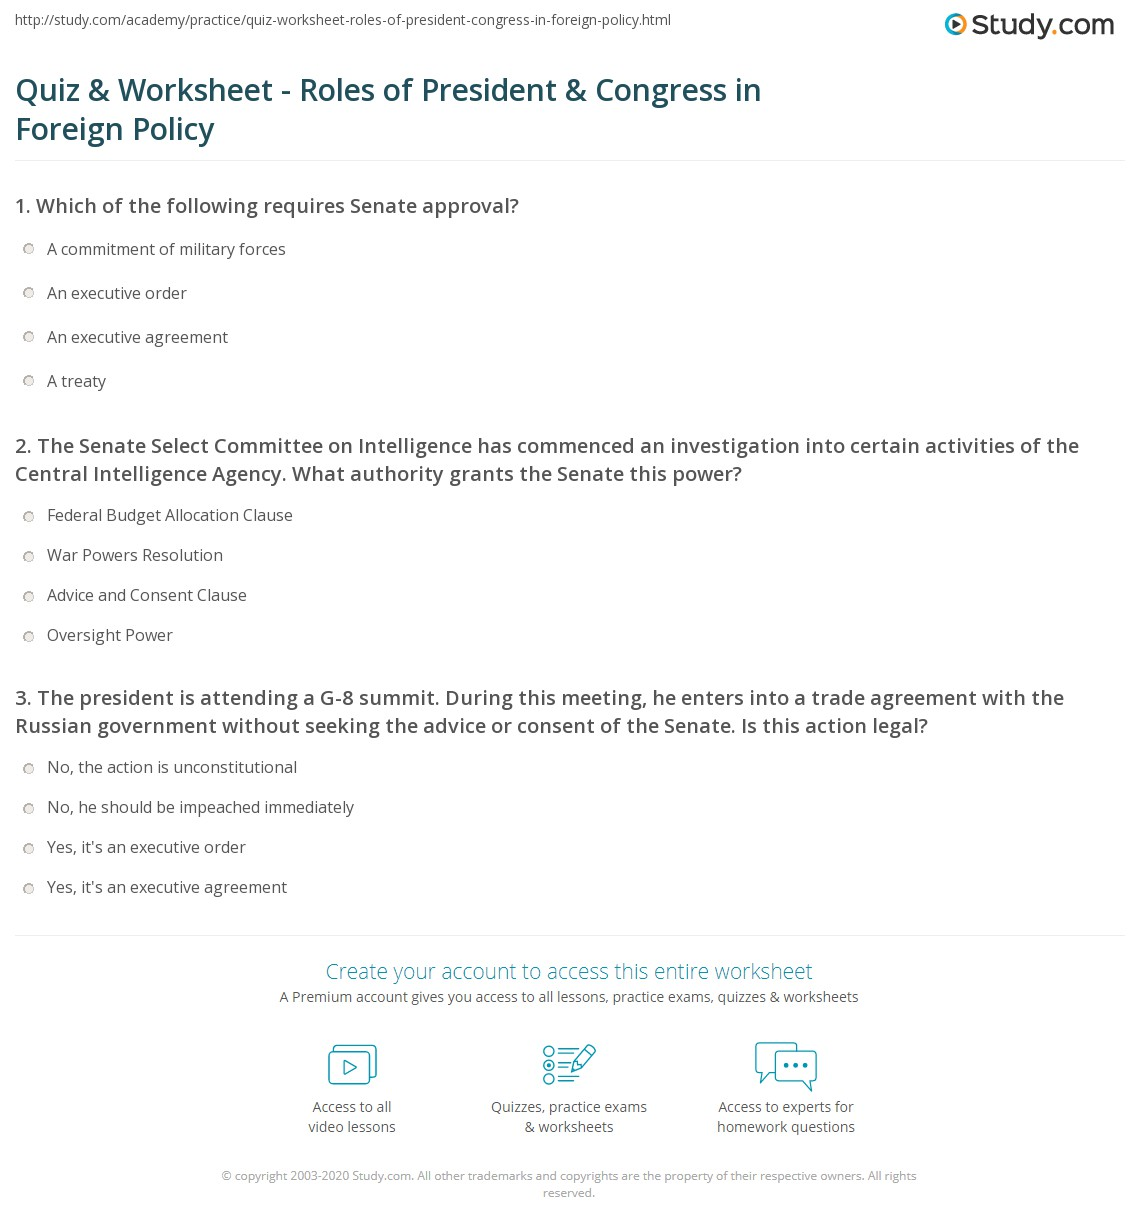 Quiz Worksheet Roles Of President Congress In Foreign Policy